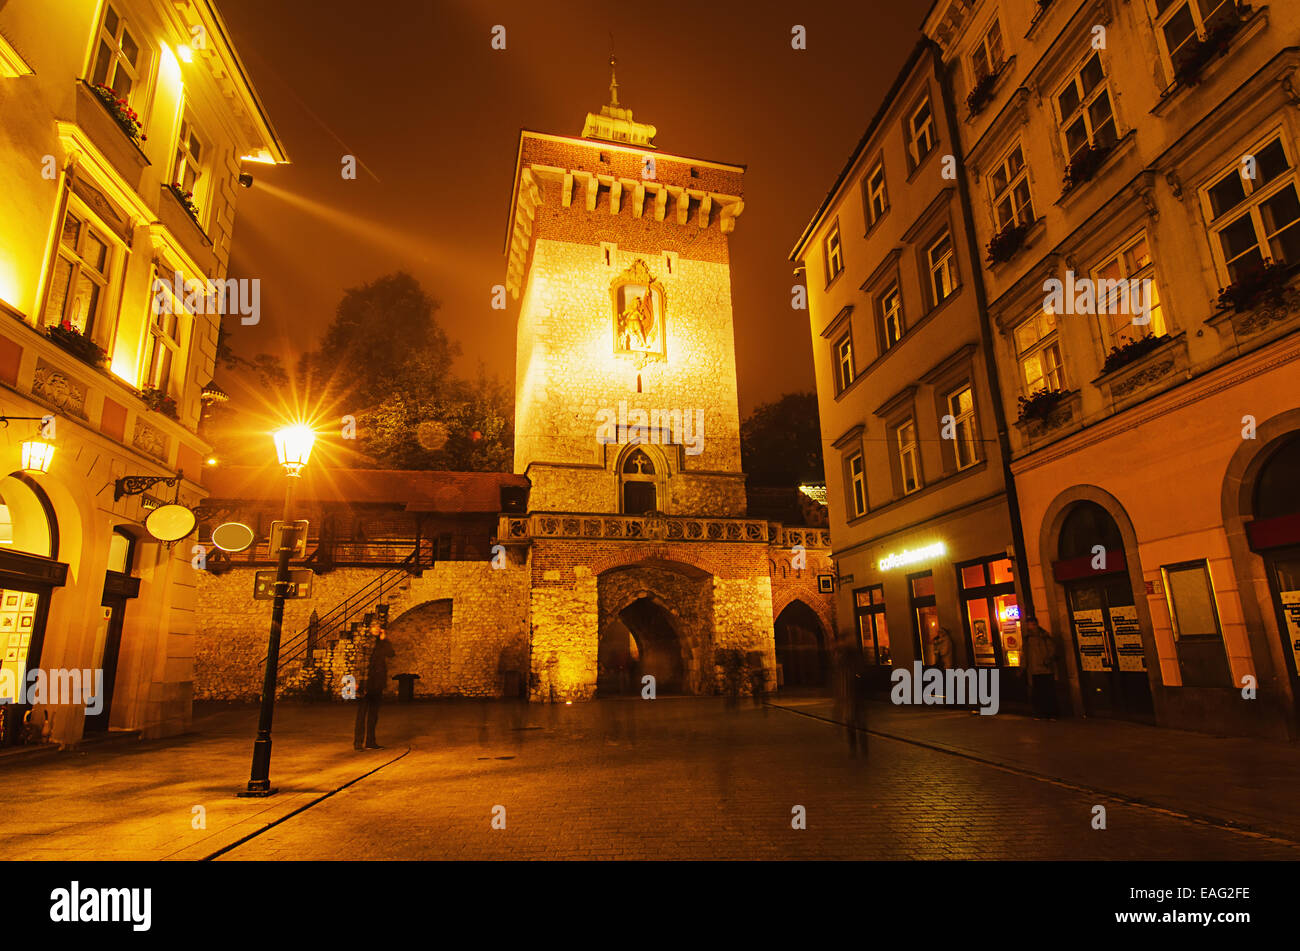 Florentine gate at night - Stock Image